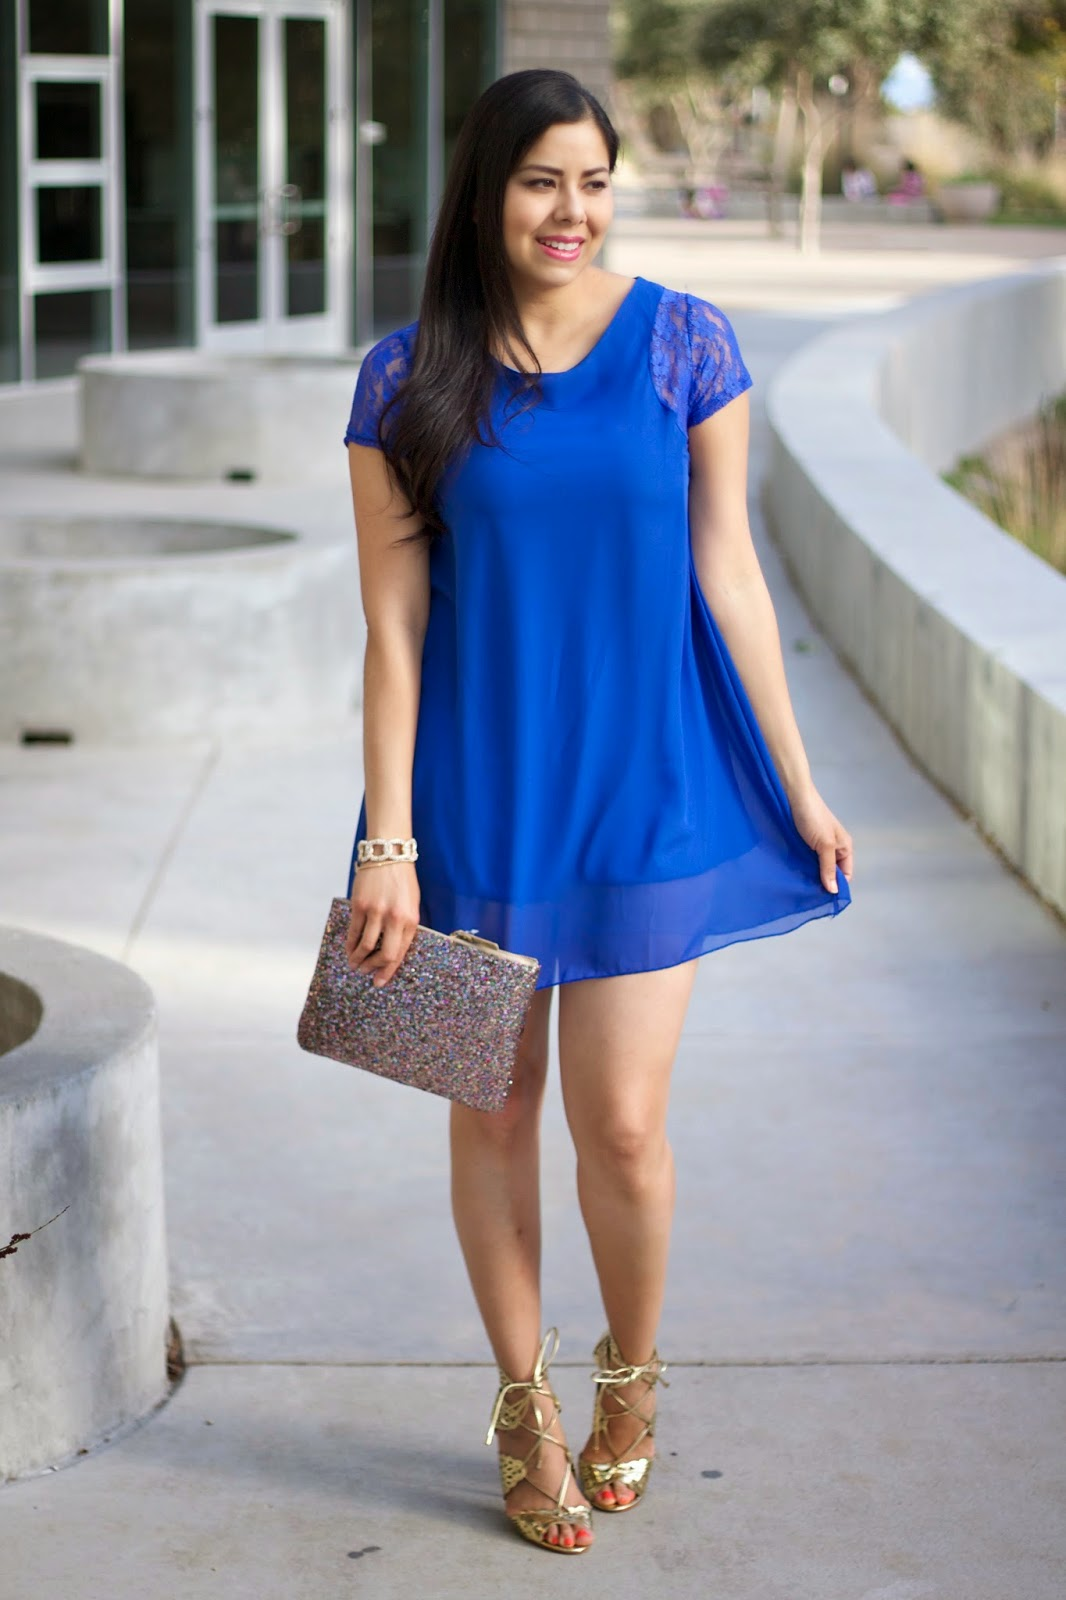 Little Cocktail Dress | Lil bits of Chic by Paulina Mo - San Diego ...